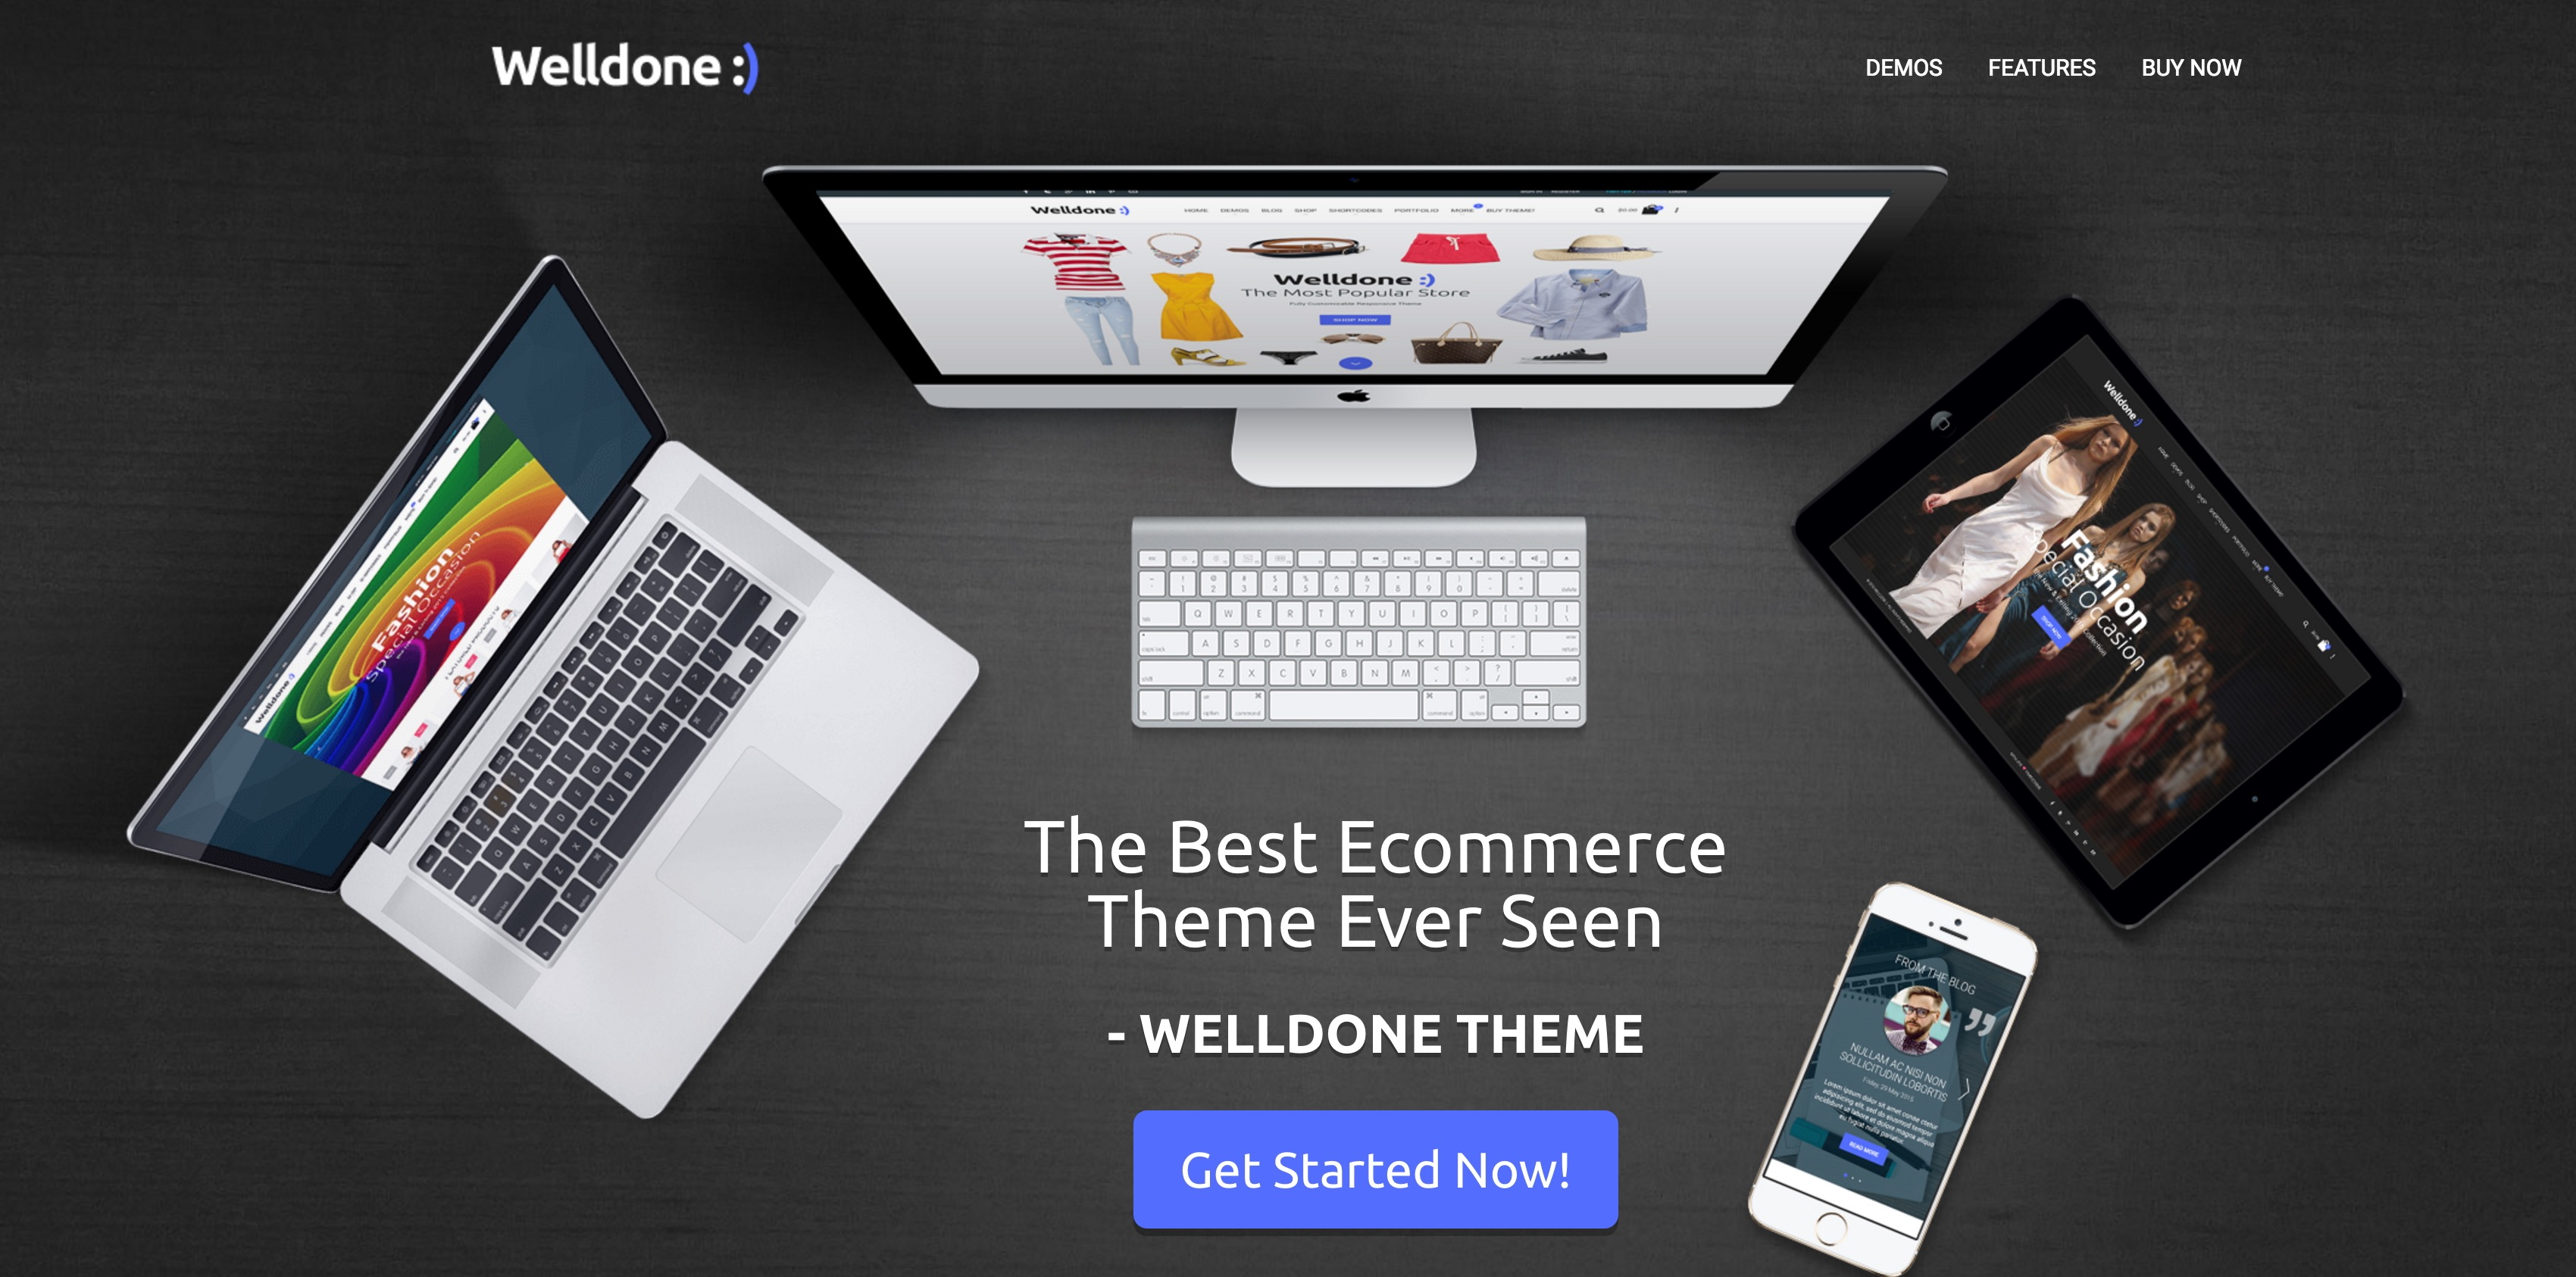 Welldone - VirtueMart eCommerce Theme